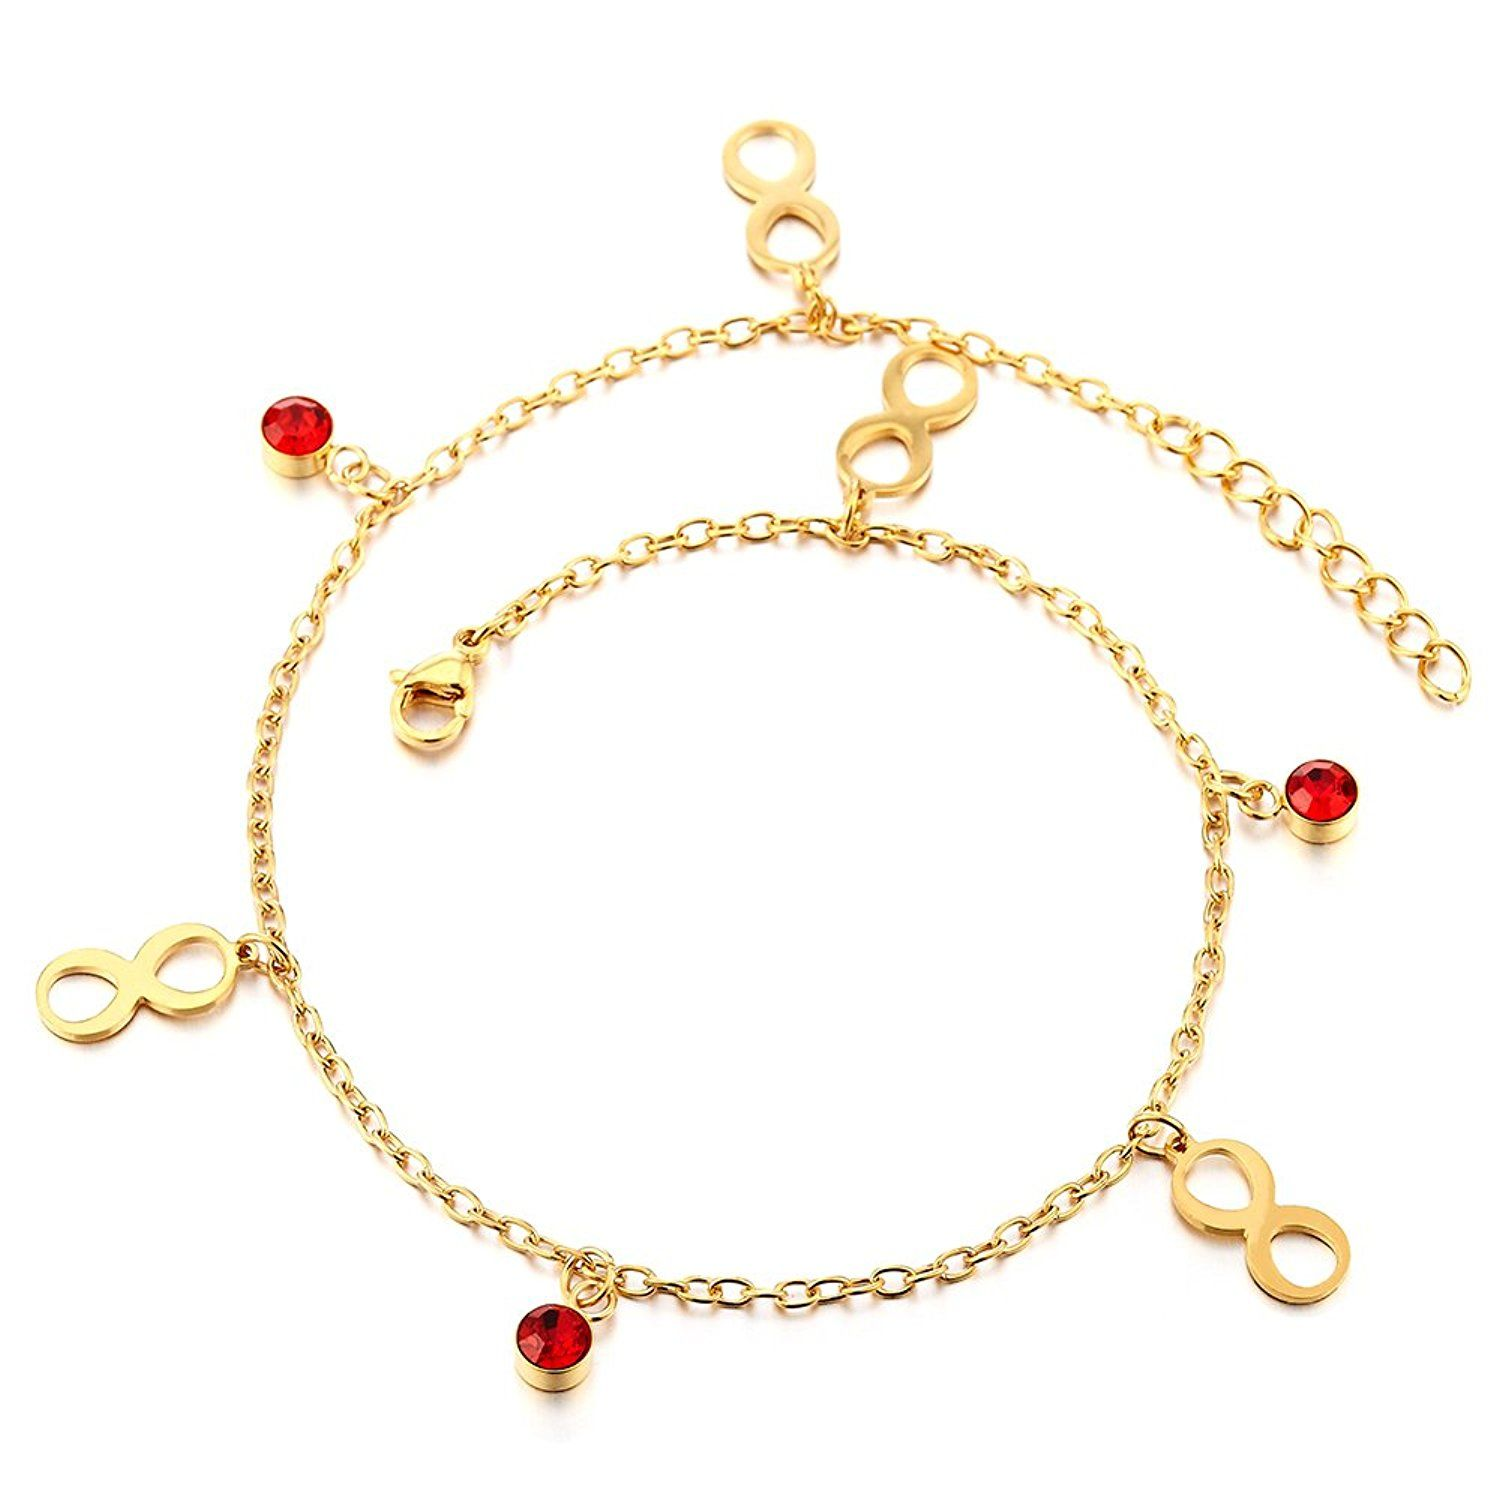 info receive over click i additional the this rose sterling is anklet a image pin gold link an zirconia and affiliate silver on cubic want amazon